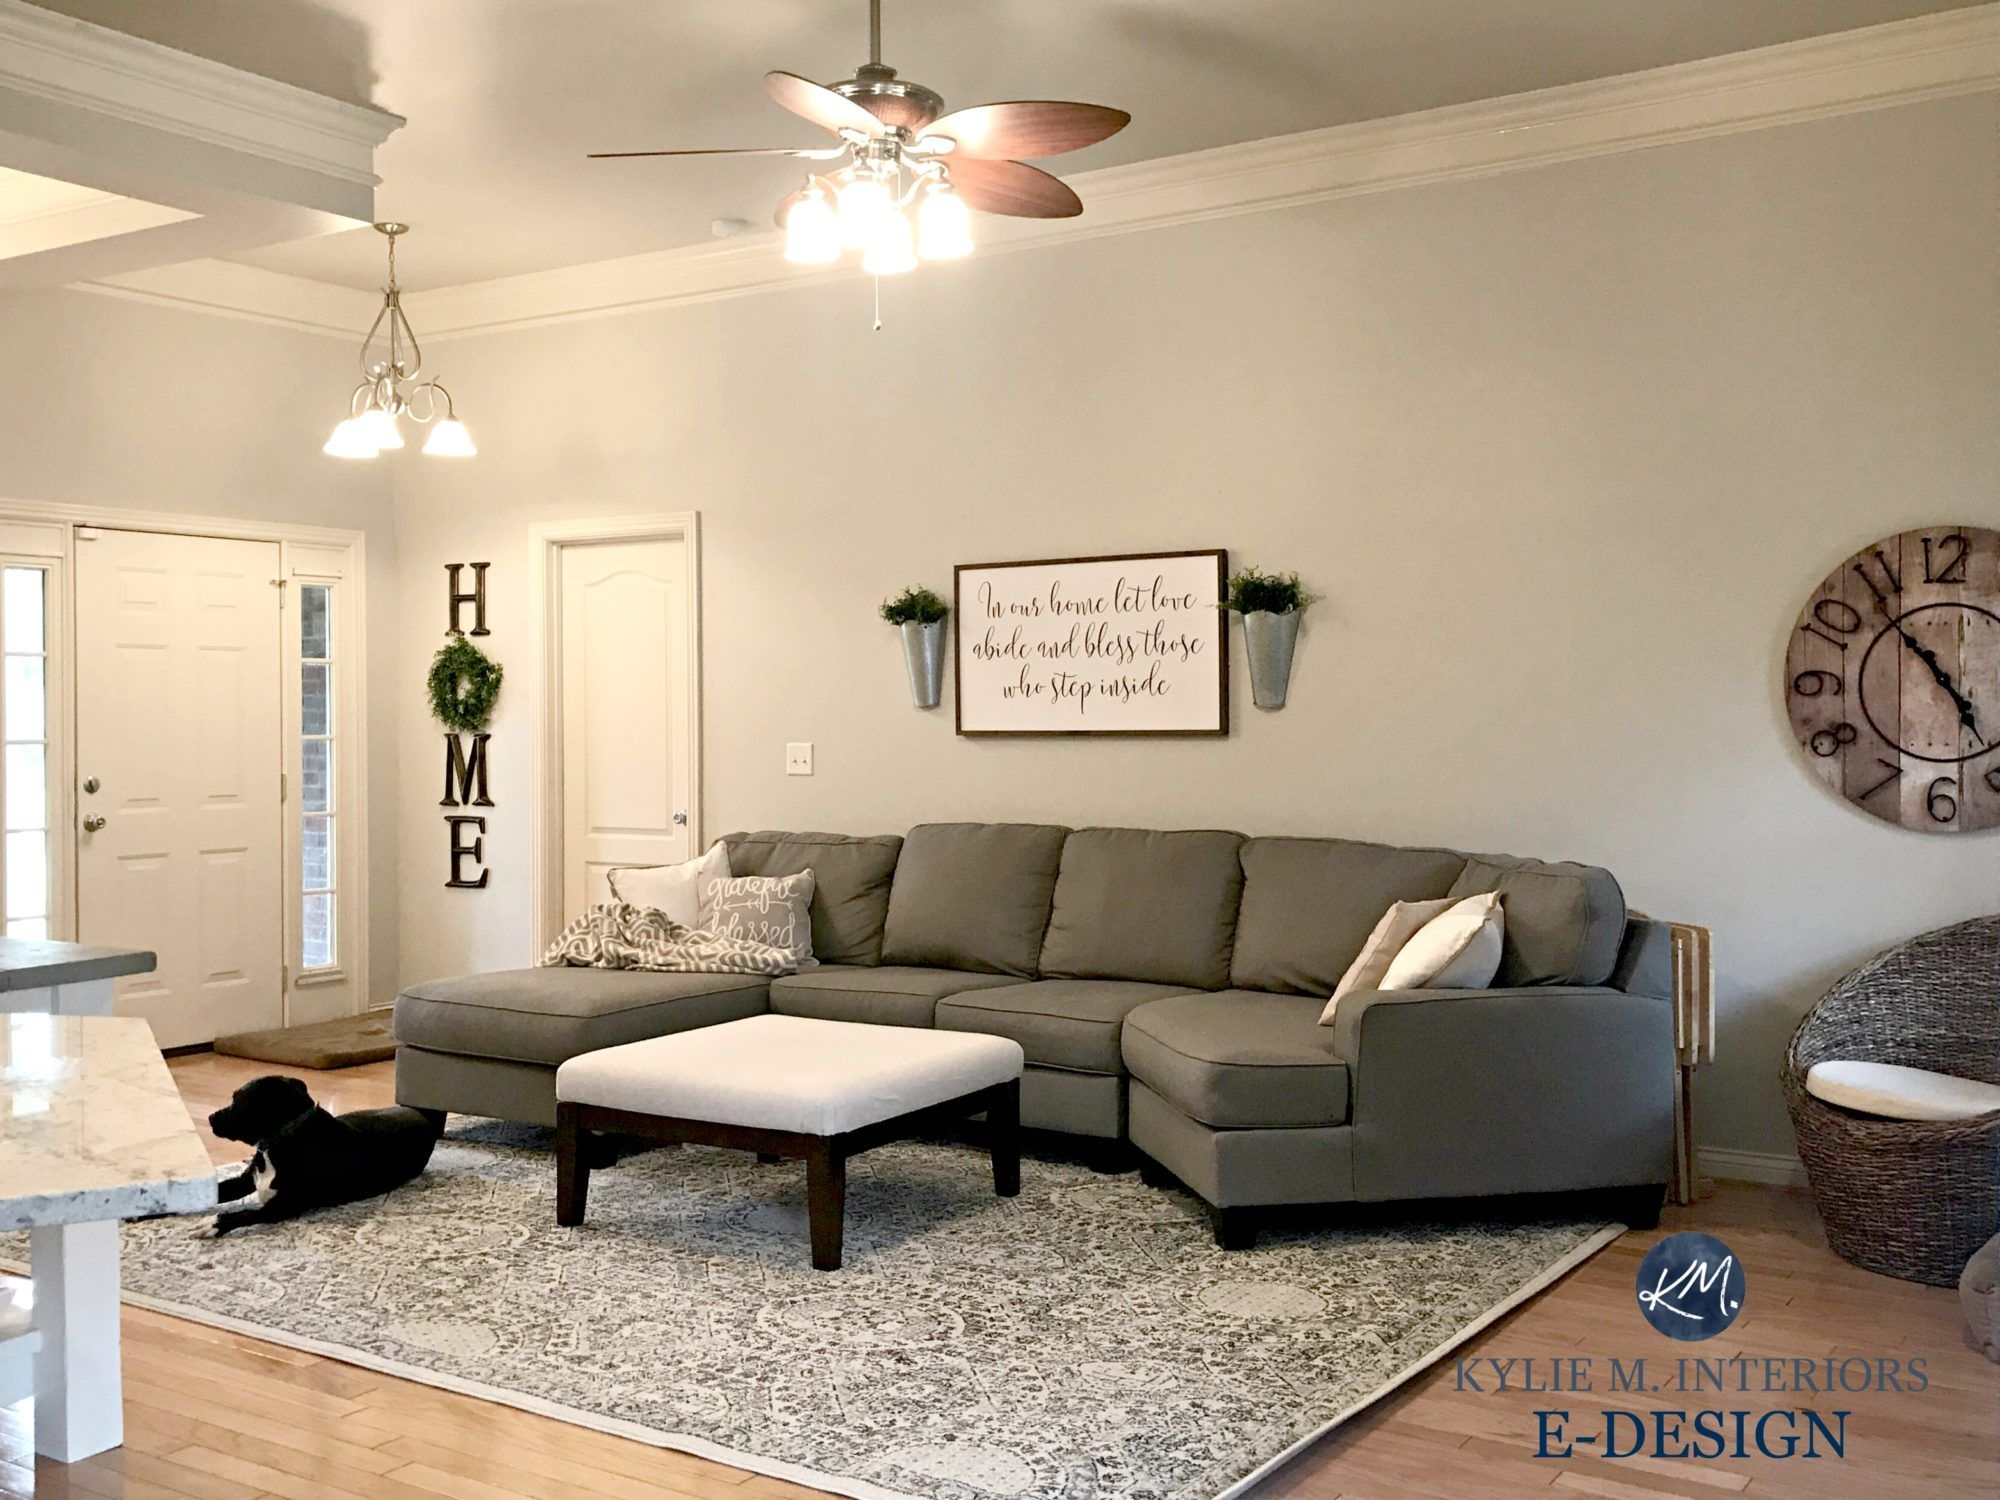 Design A Living Room Online Stunning Sherwin Williams Agreeable Gray In Living Room With Gray Sectional Decorating Design